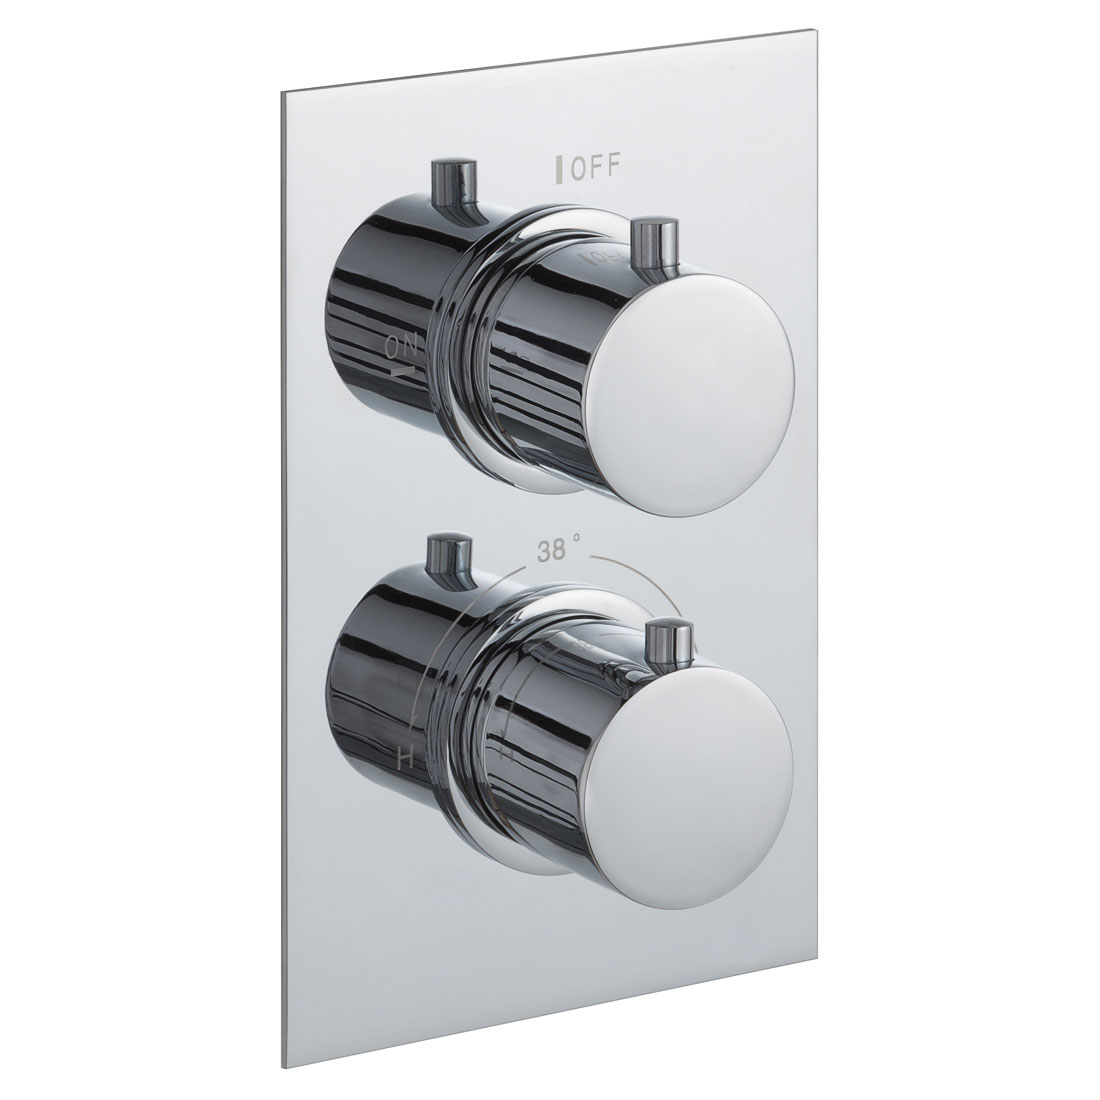 JTP Round Thermostatic Concealed 1 Outlet Shower Valve - Chrome